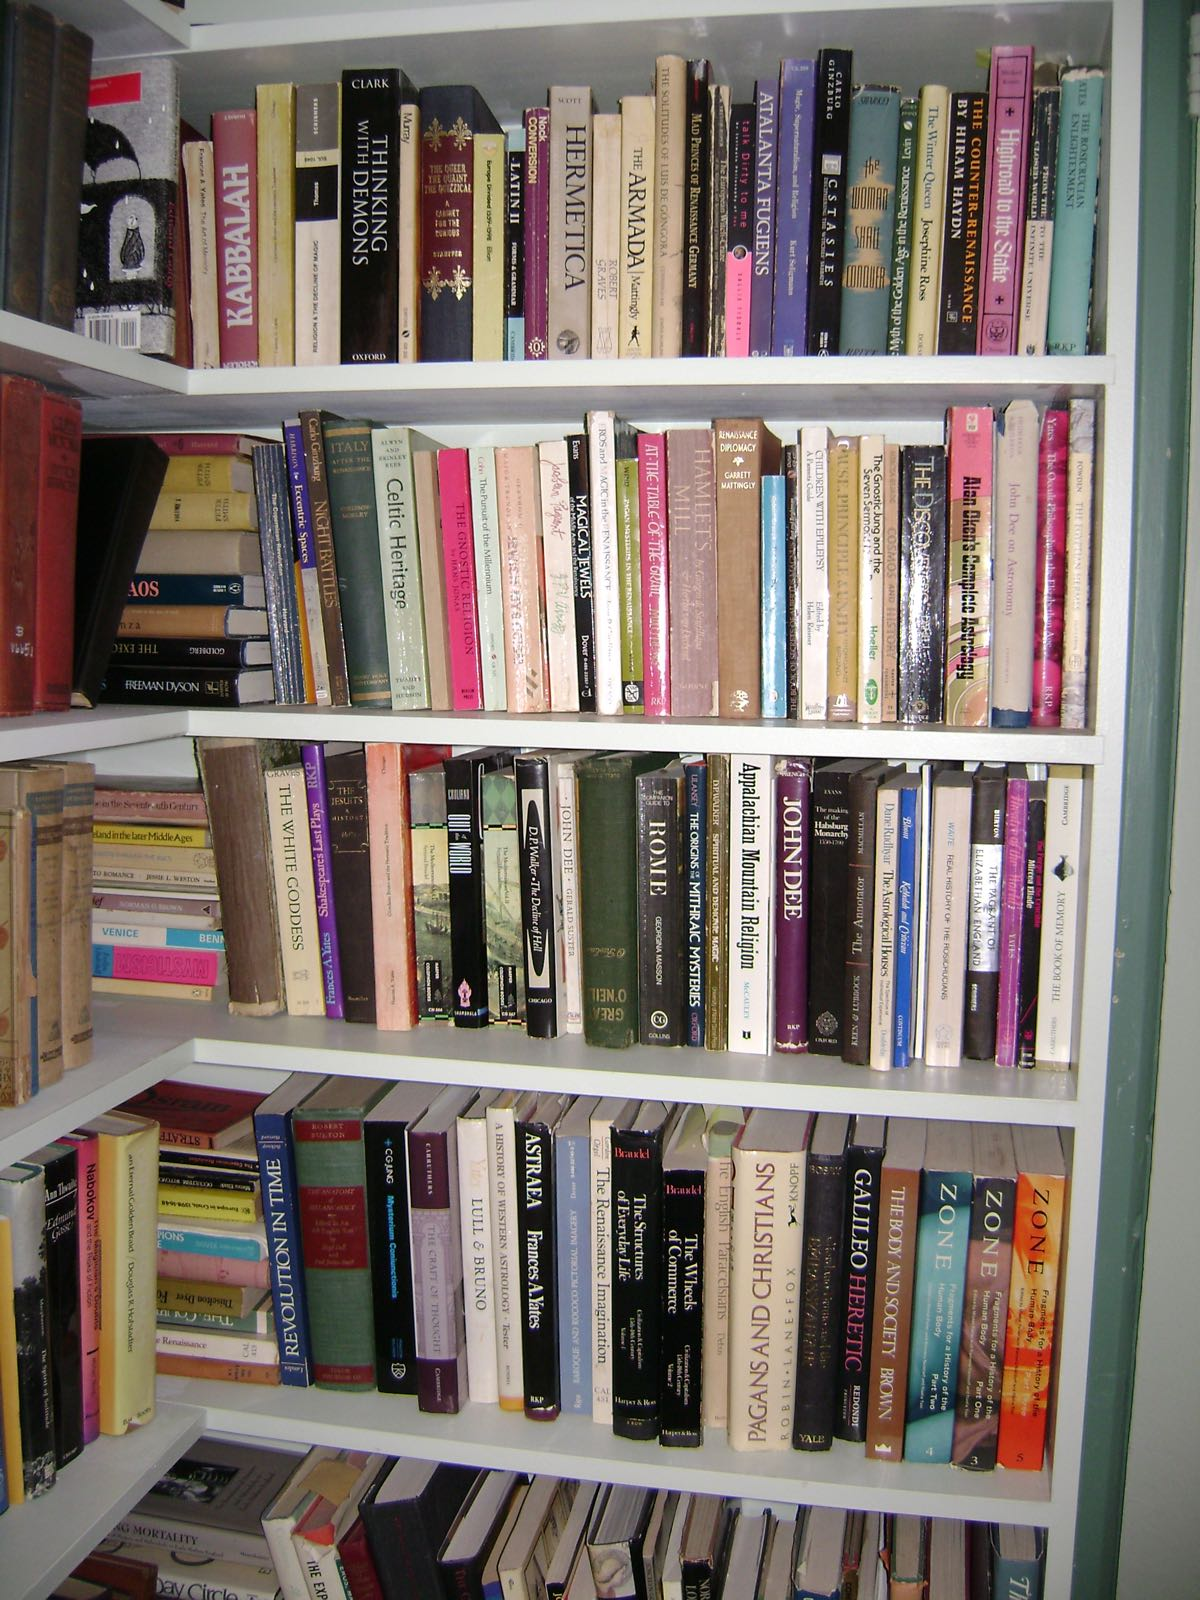 The Endless Bookshelf : Simply Messing About In Books By Henry Wessells :  Archives February To November 2008